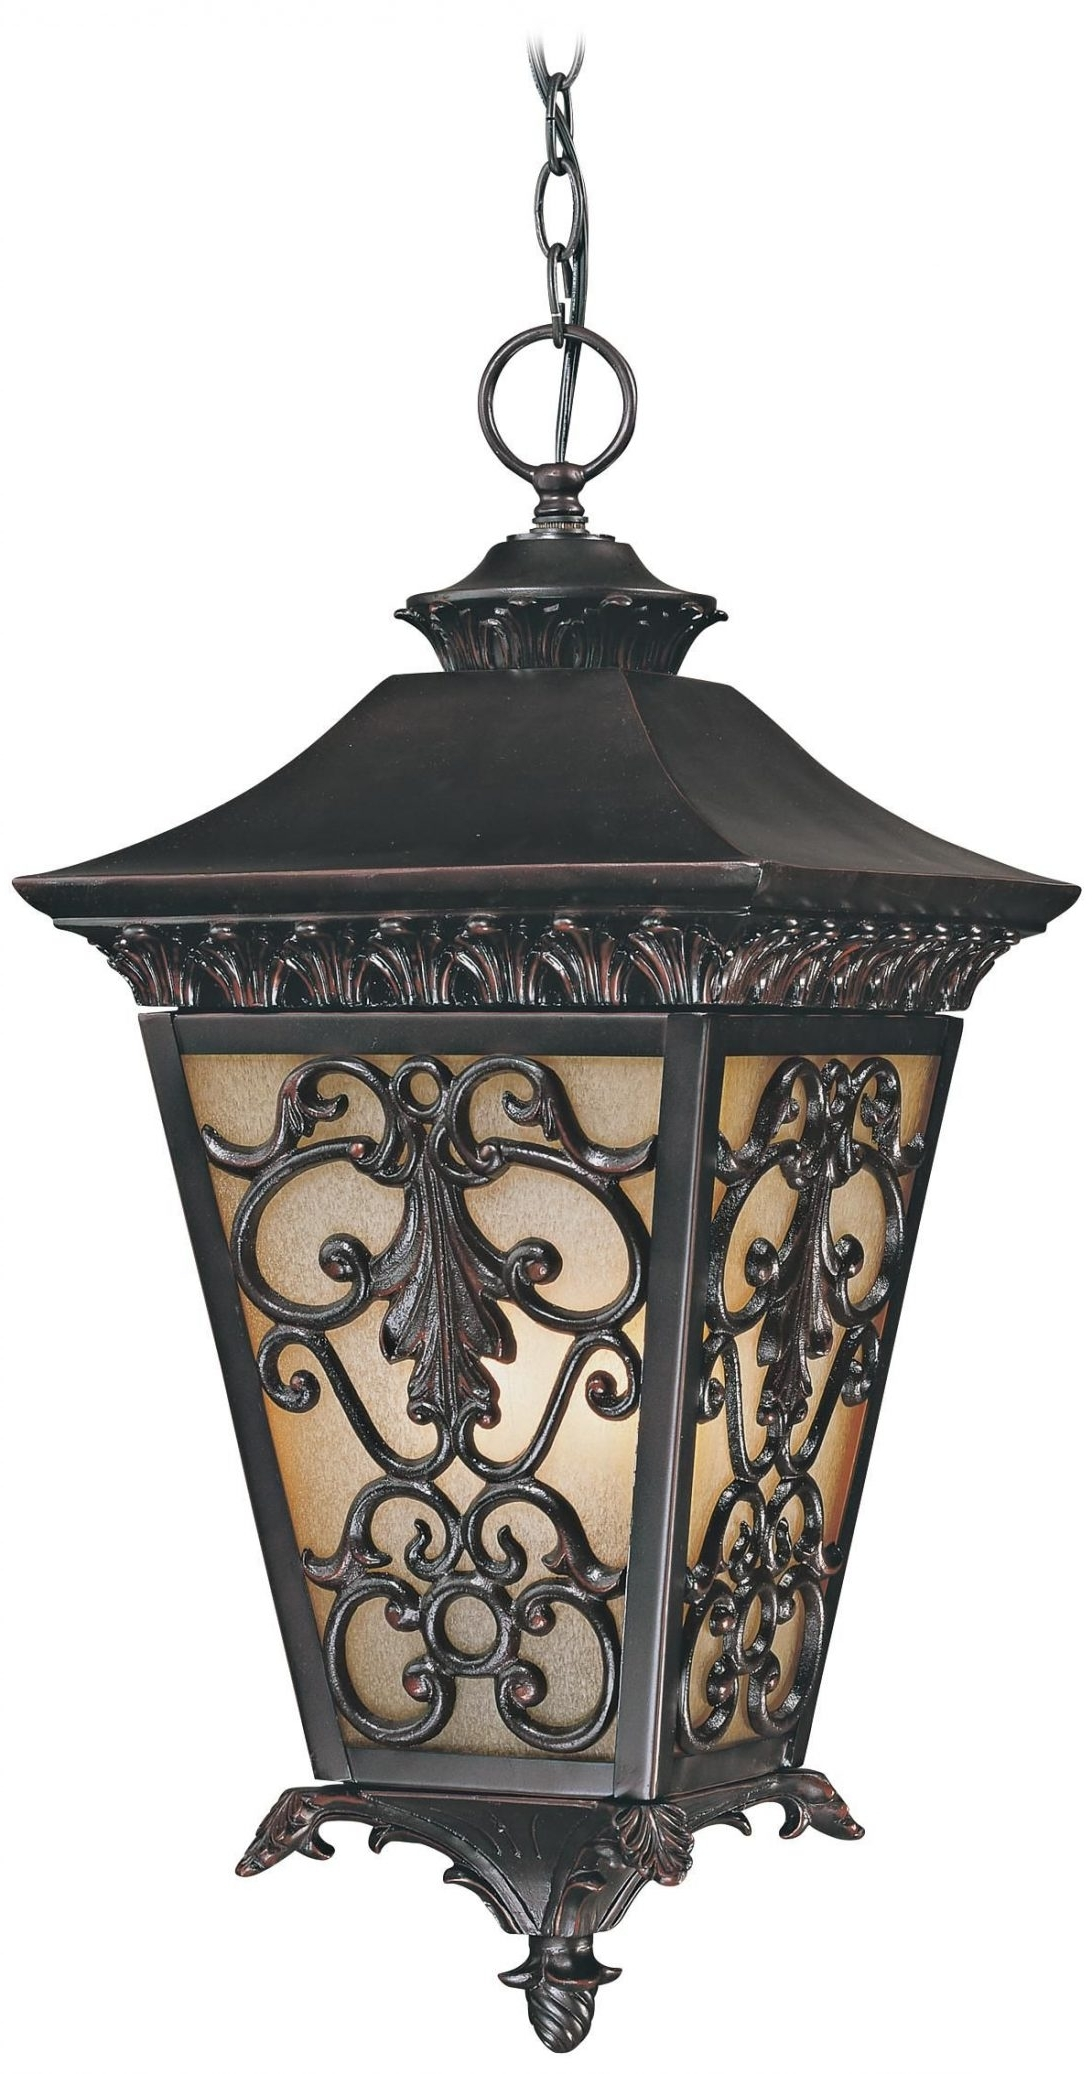 Victorian Outdoor Lanterns Intended For Popular Antique Porch Lights Victorian – Image Antique And Candle (Gallery 16 of 20)